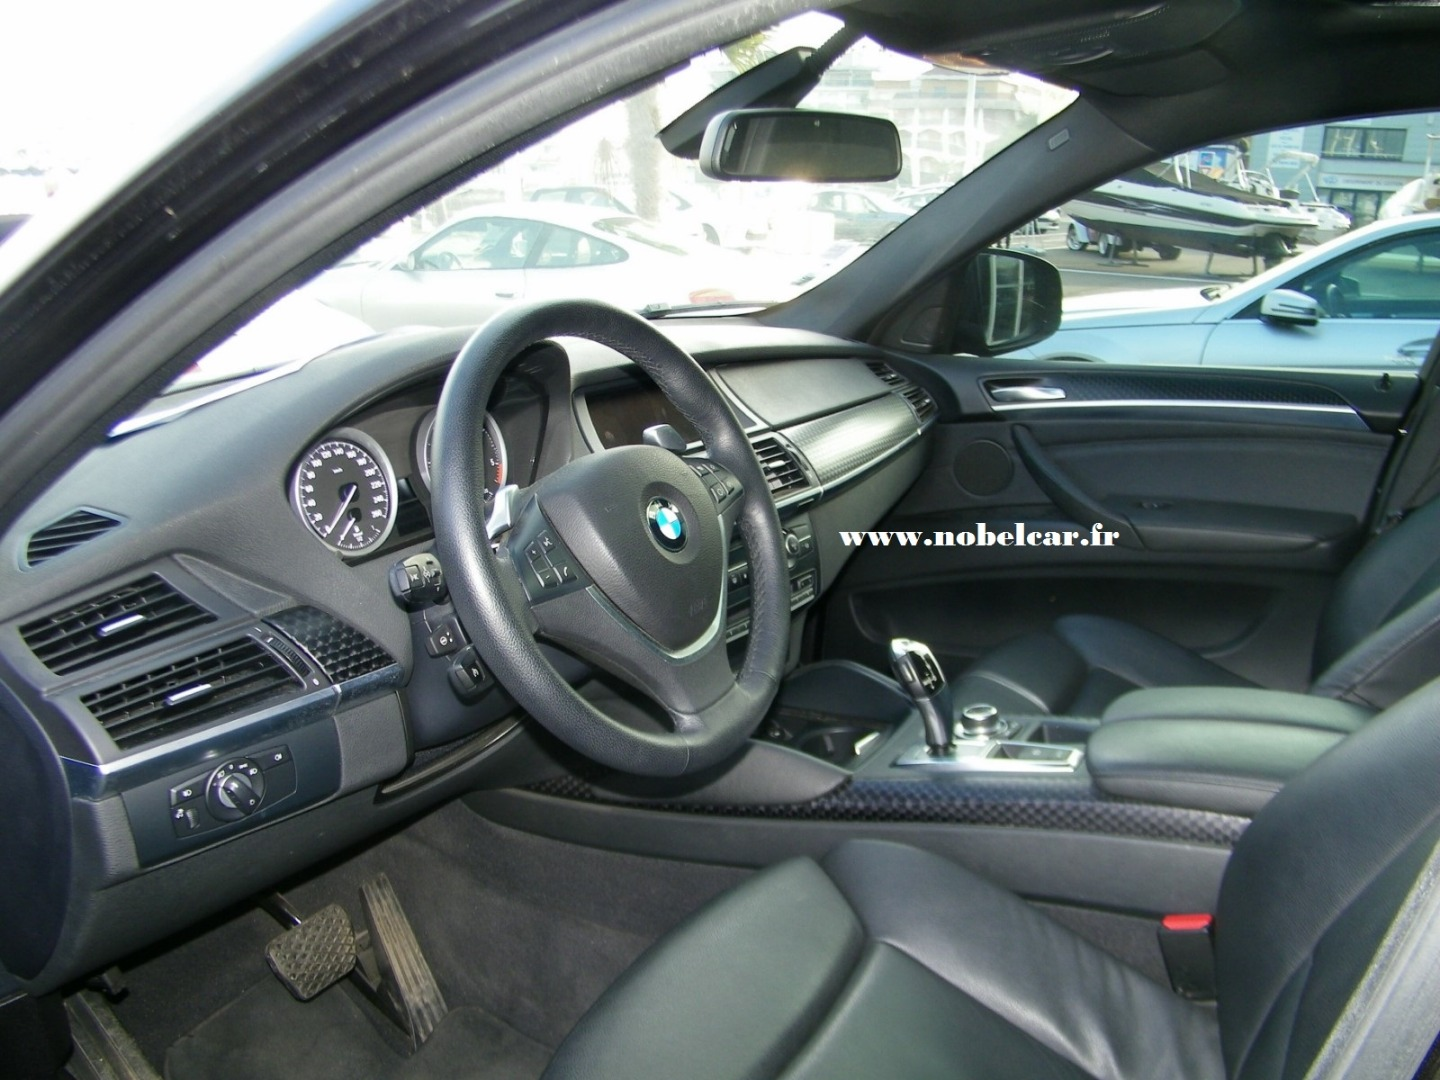 BMW X6 E71 XDRIVE 3.0D 235 LUXE d'occasion Gironde 33